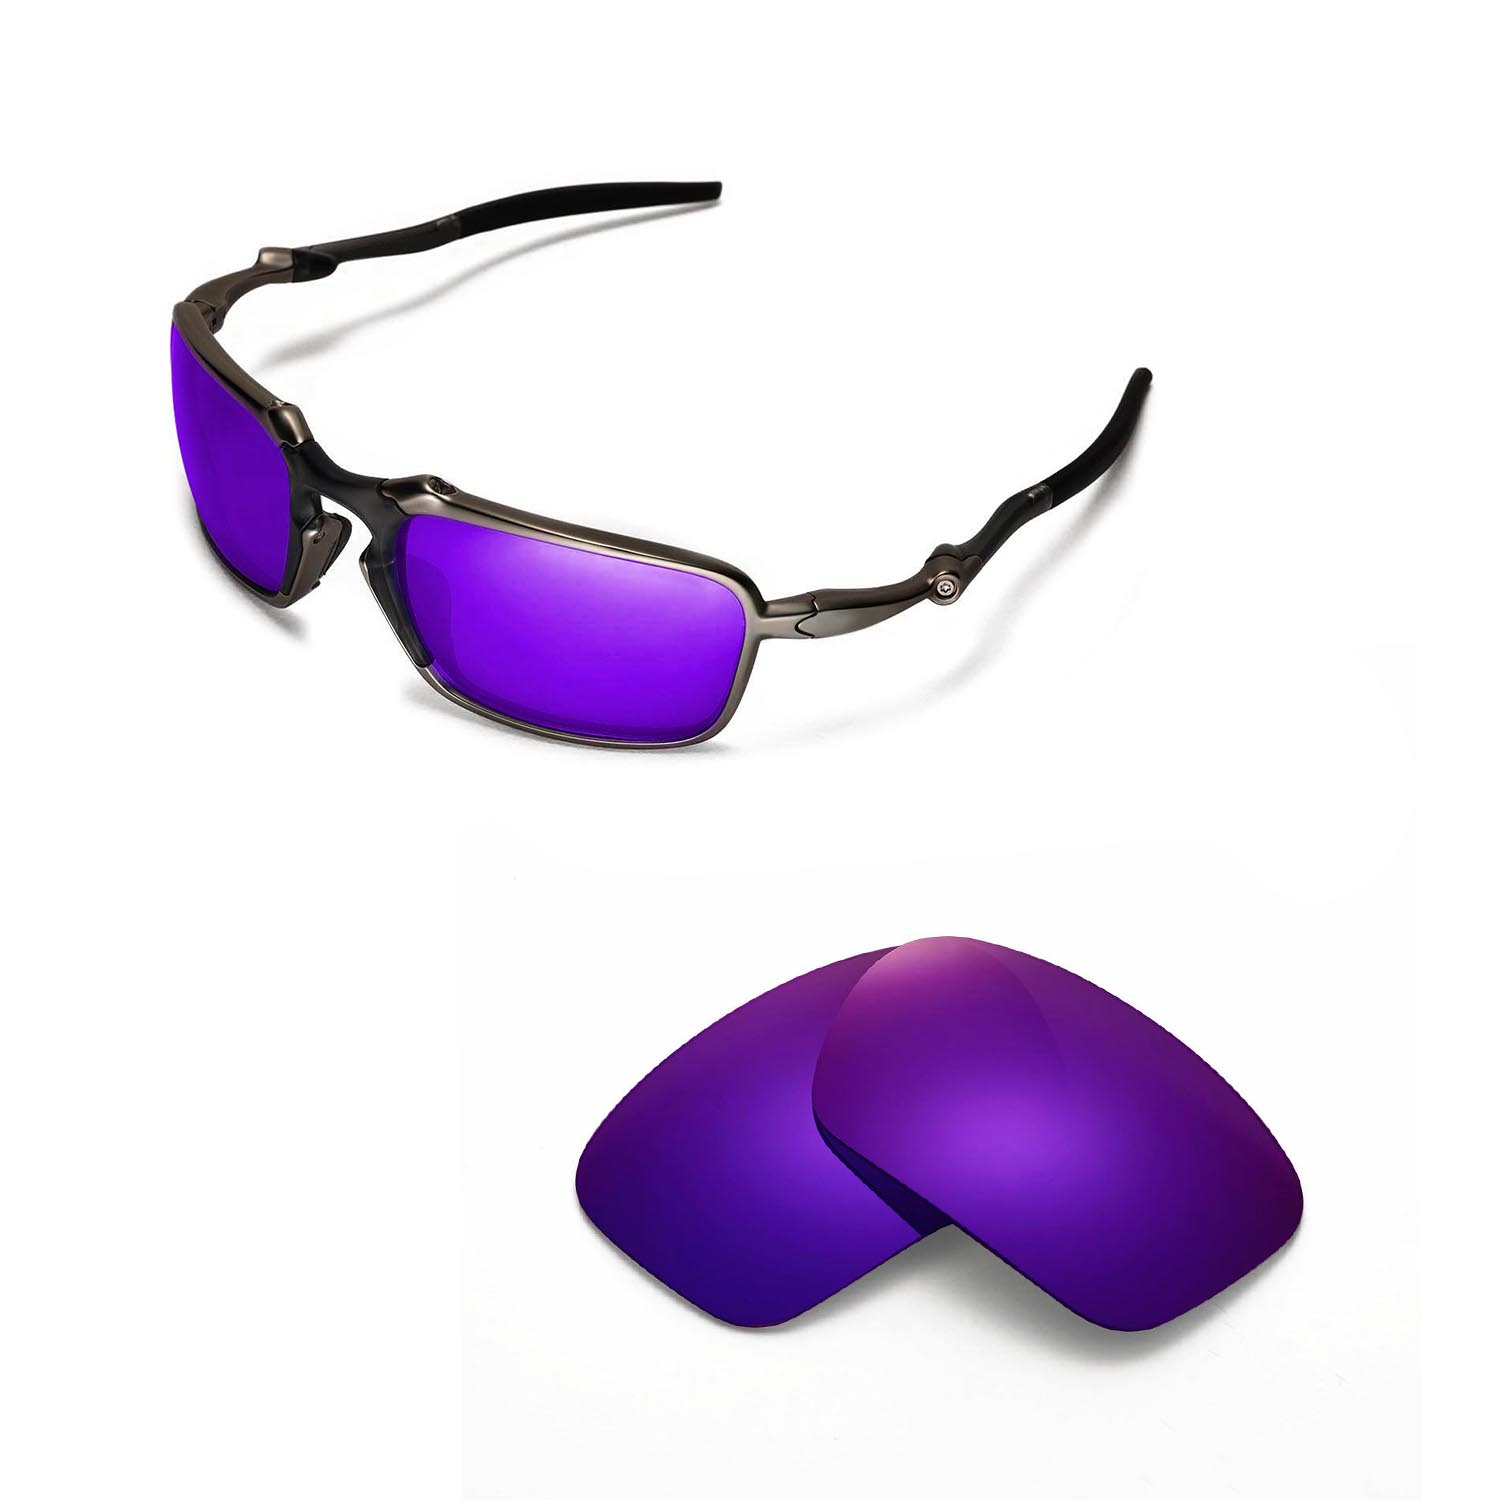 c2b728a7474 Details about New Walleva Polarized Purple Replacement Lenses For Oakley  Badman Sunglasses